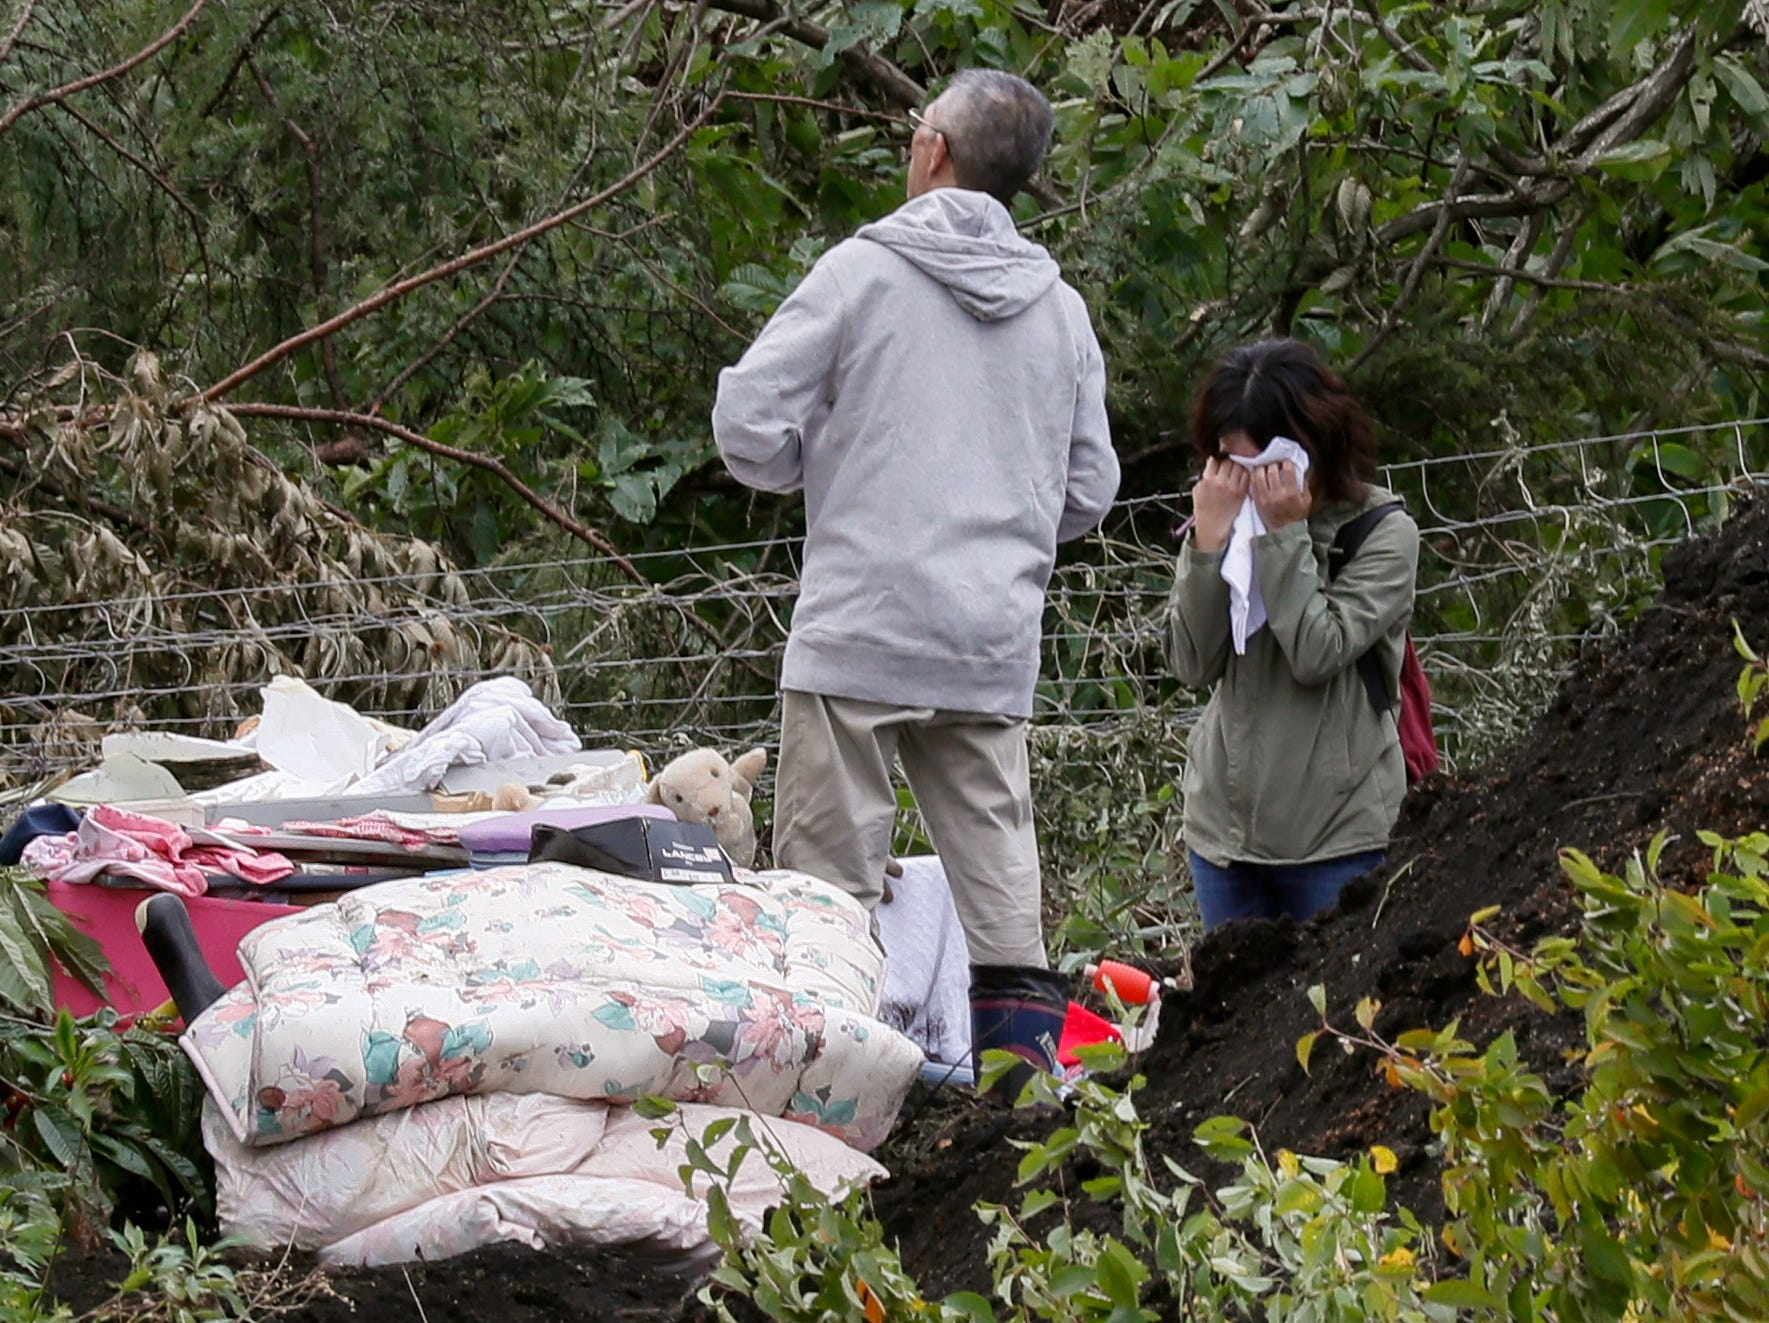 Family members react at a large landslide site in the Yoshino district of Atsuma, an area that was hit by a powerful earthquake, in Hokkaido, Japan. A 6.7 magnitude earthquake killed at least 20 people, injurying many, media reported.